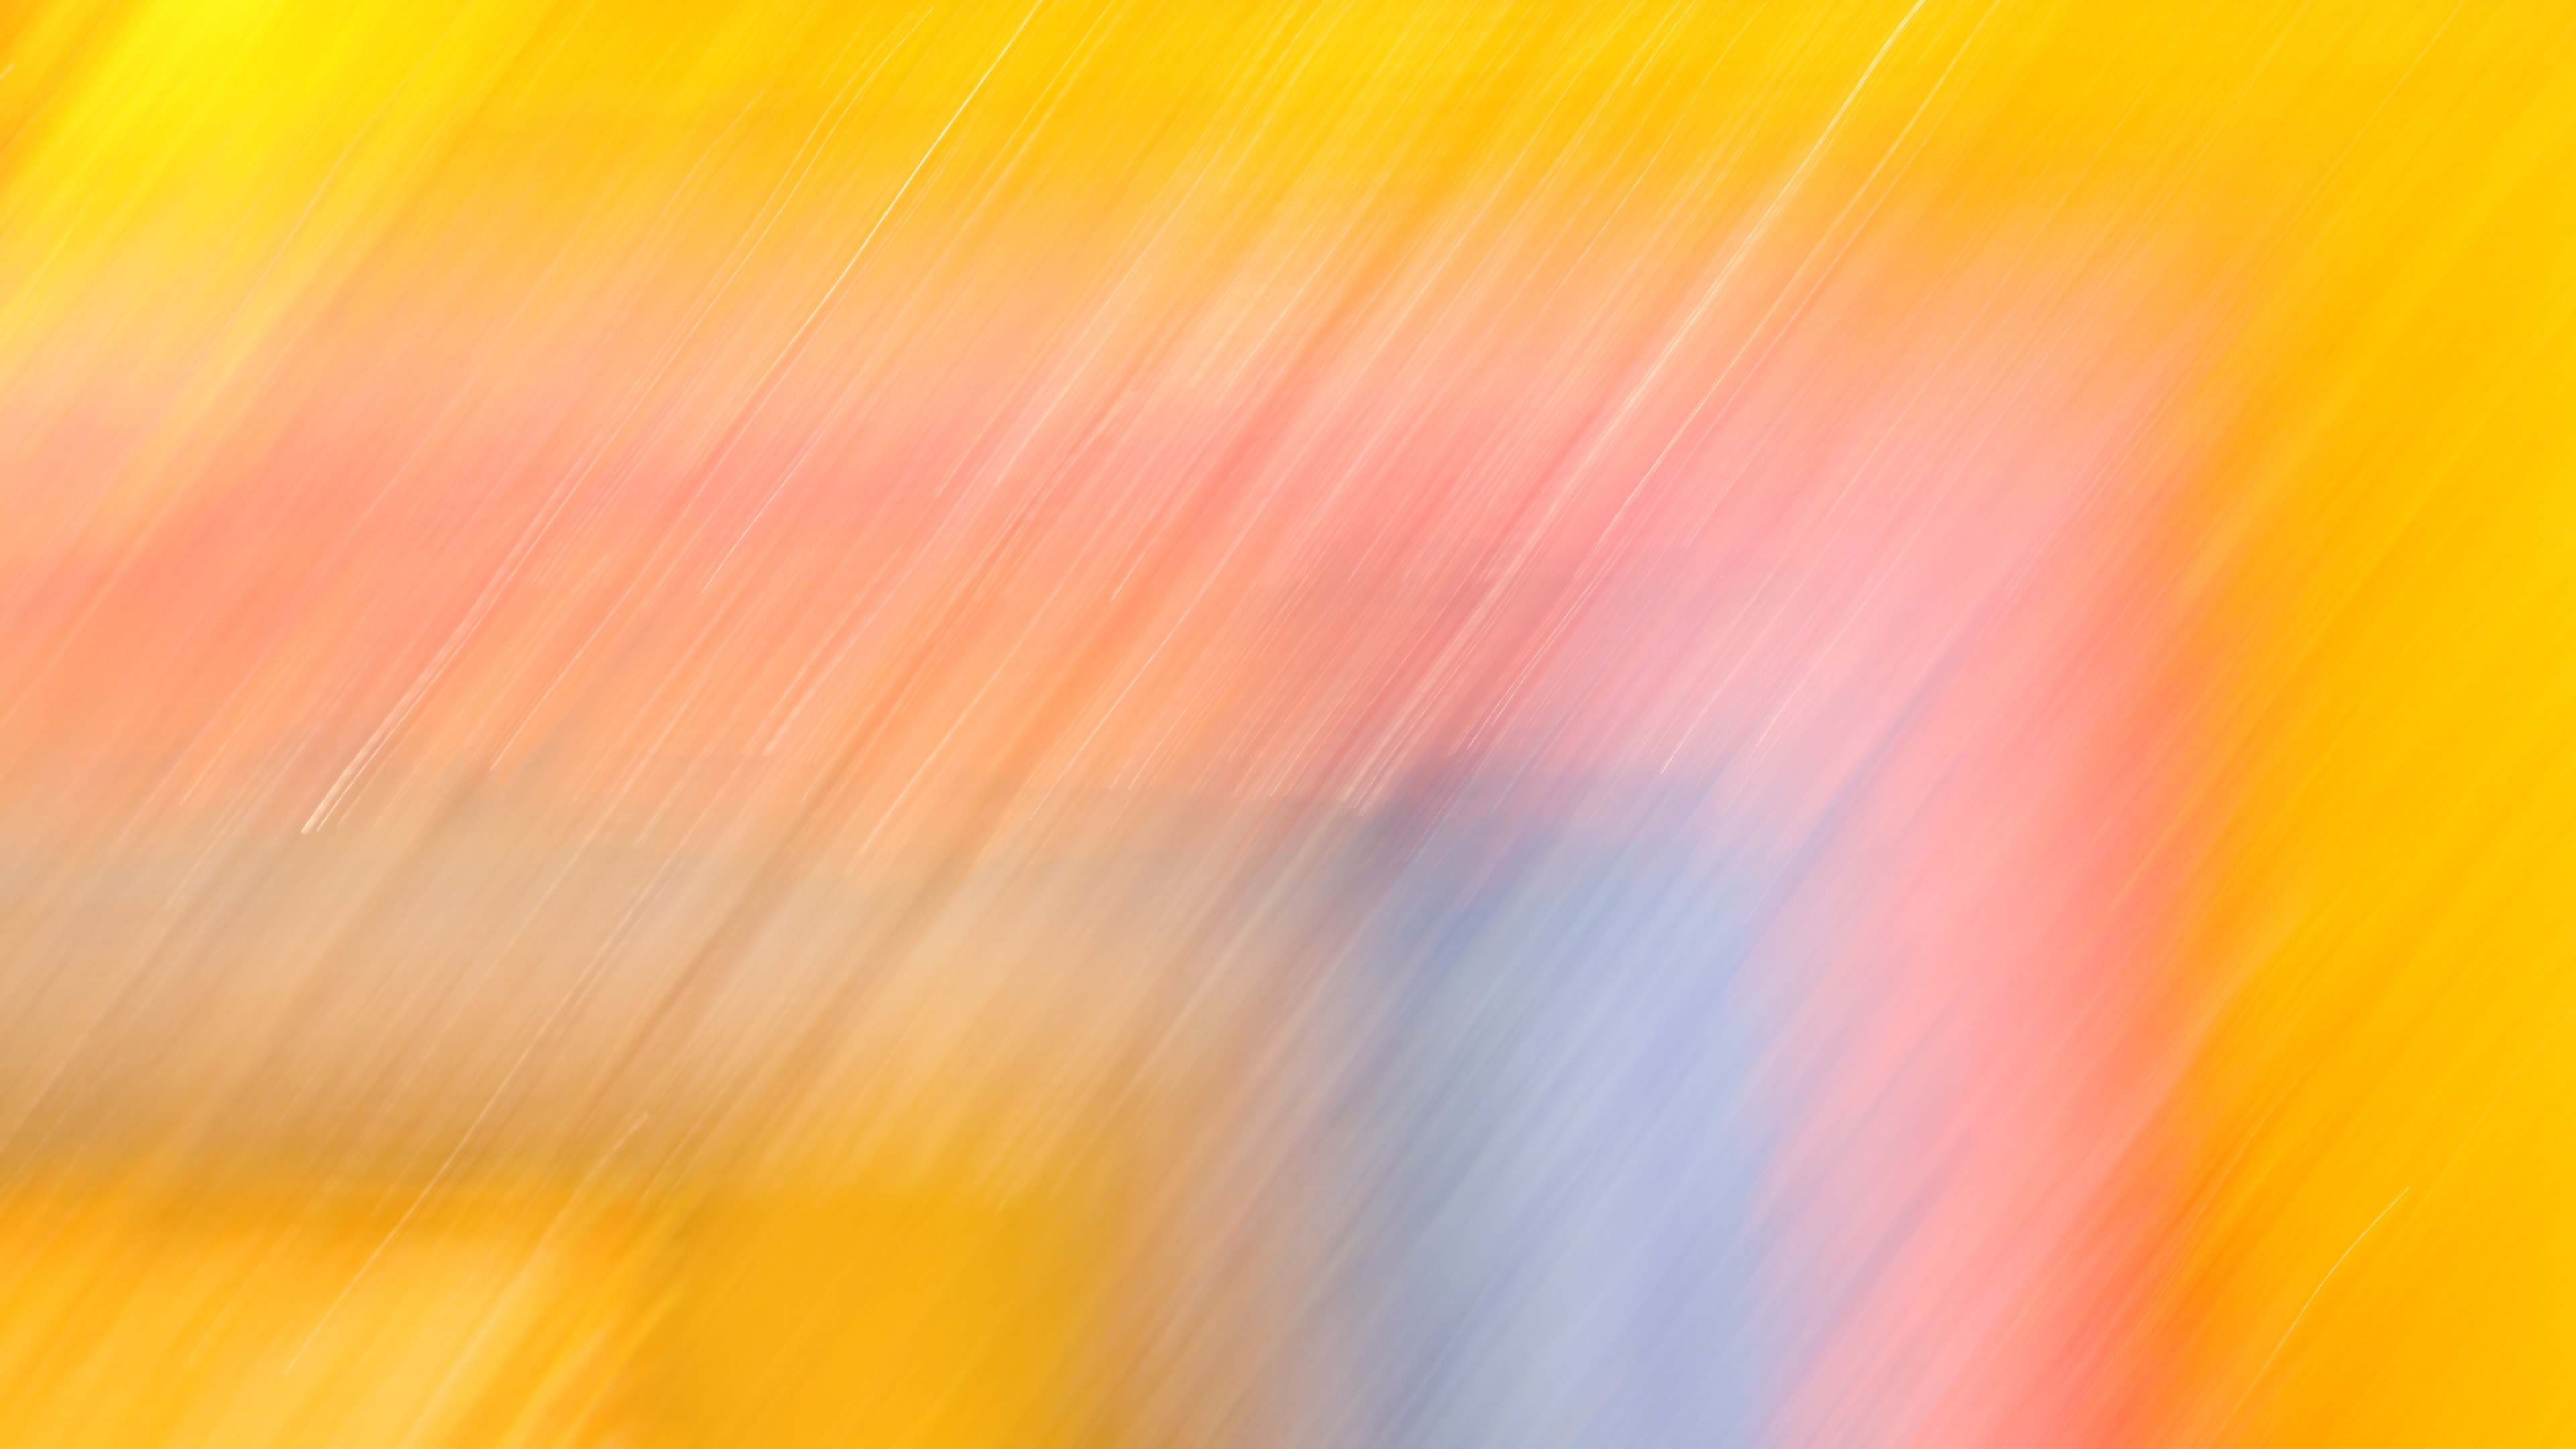 540x960 yellow bright abstract lines 4k 540x960 resolution for Bright wallpaper for walls